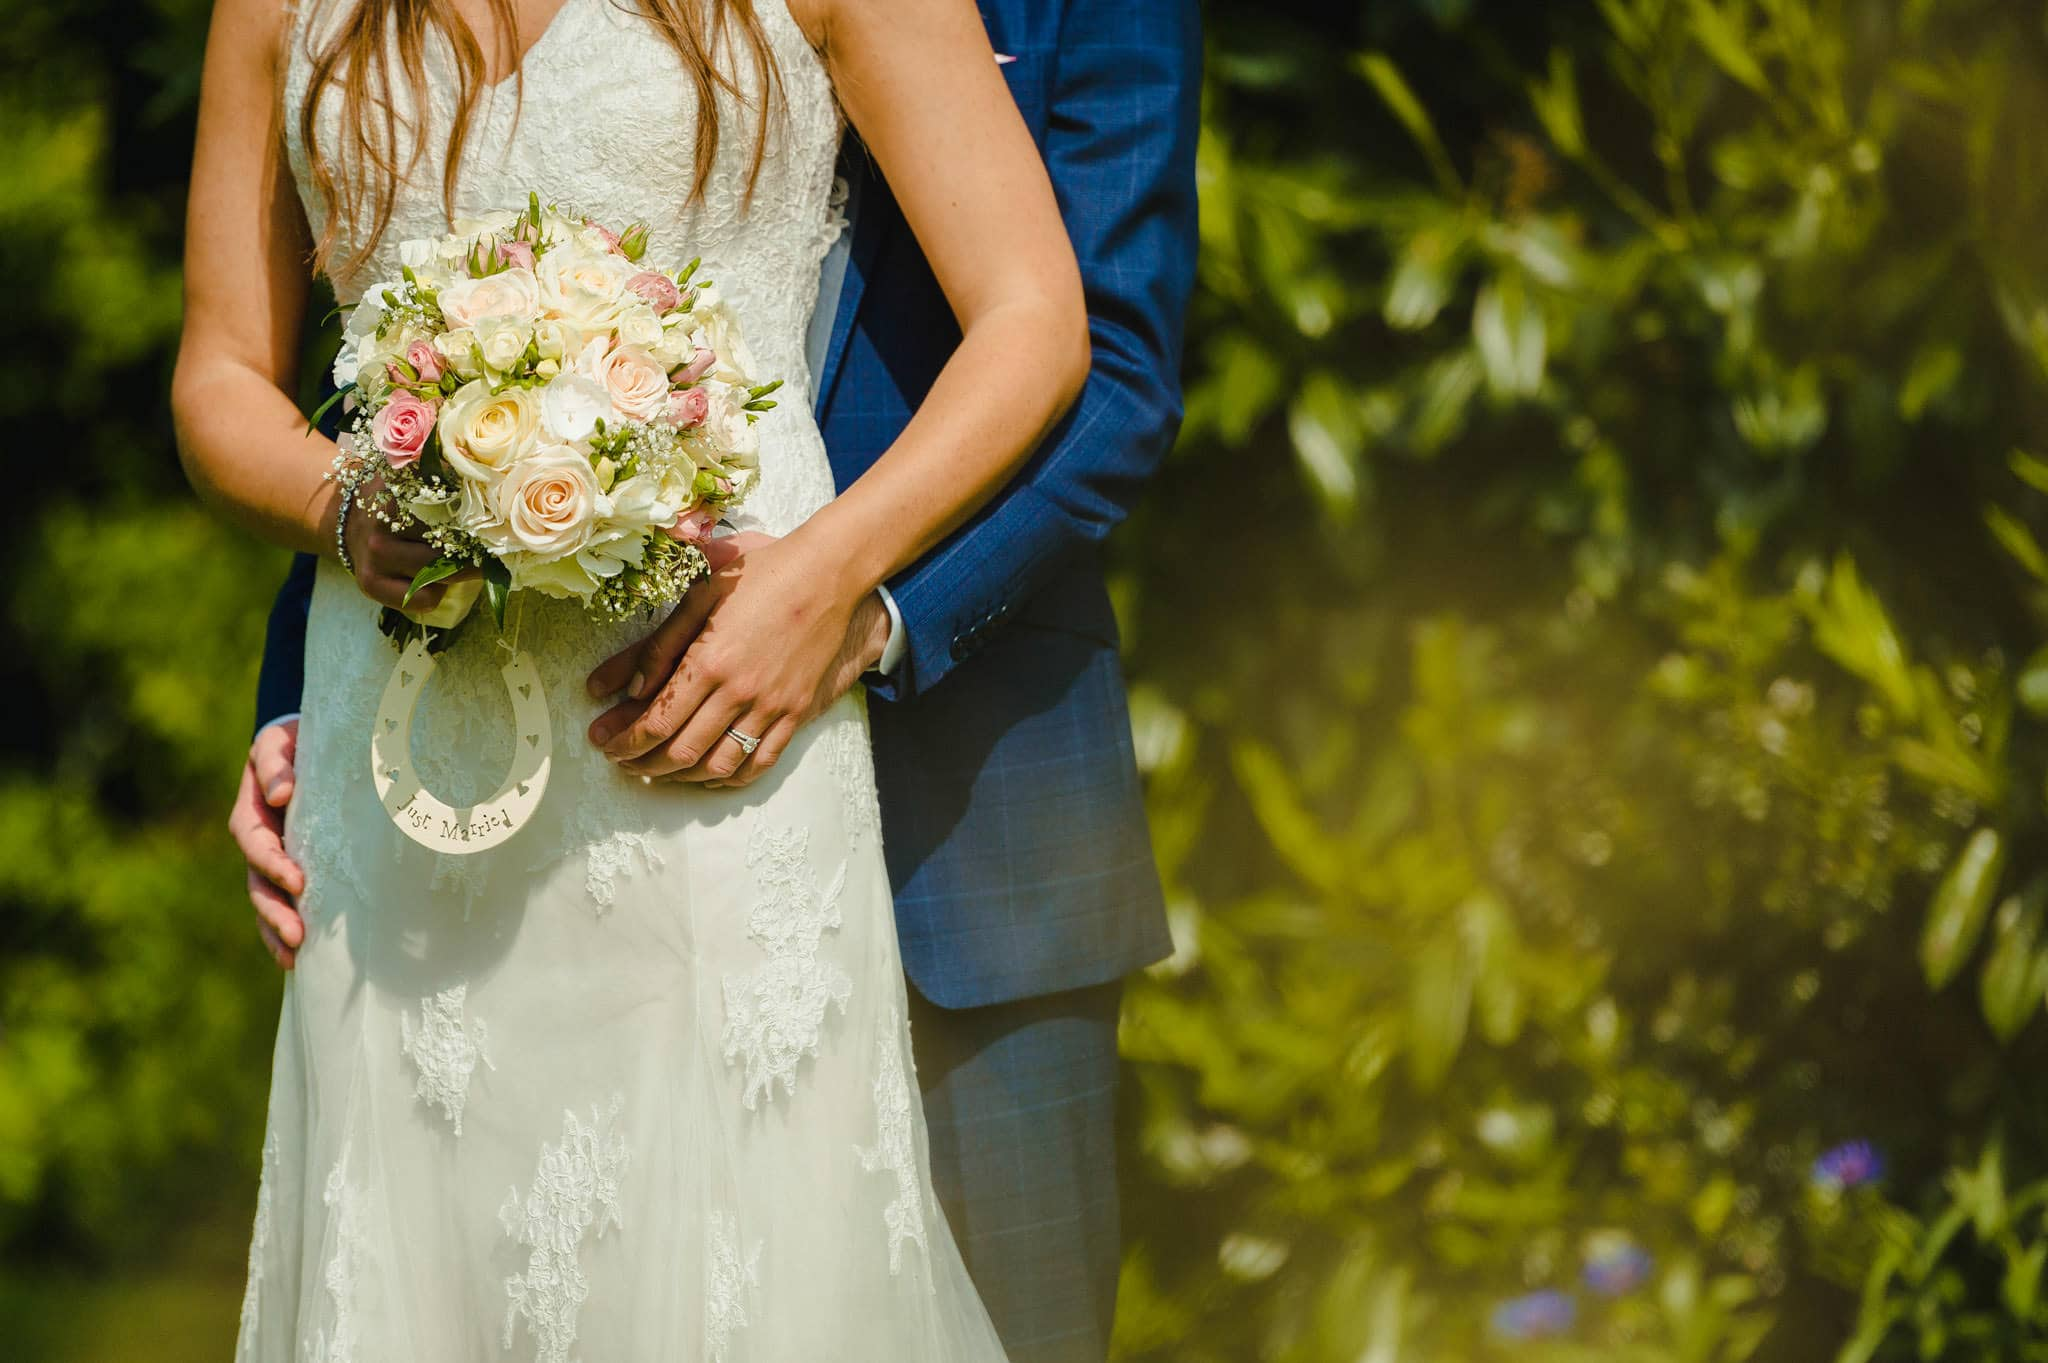 Wedding at Redhouse Barn in Stoke Prior, Worcestershire 115